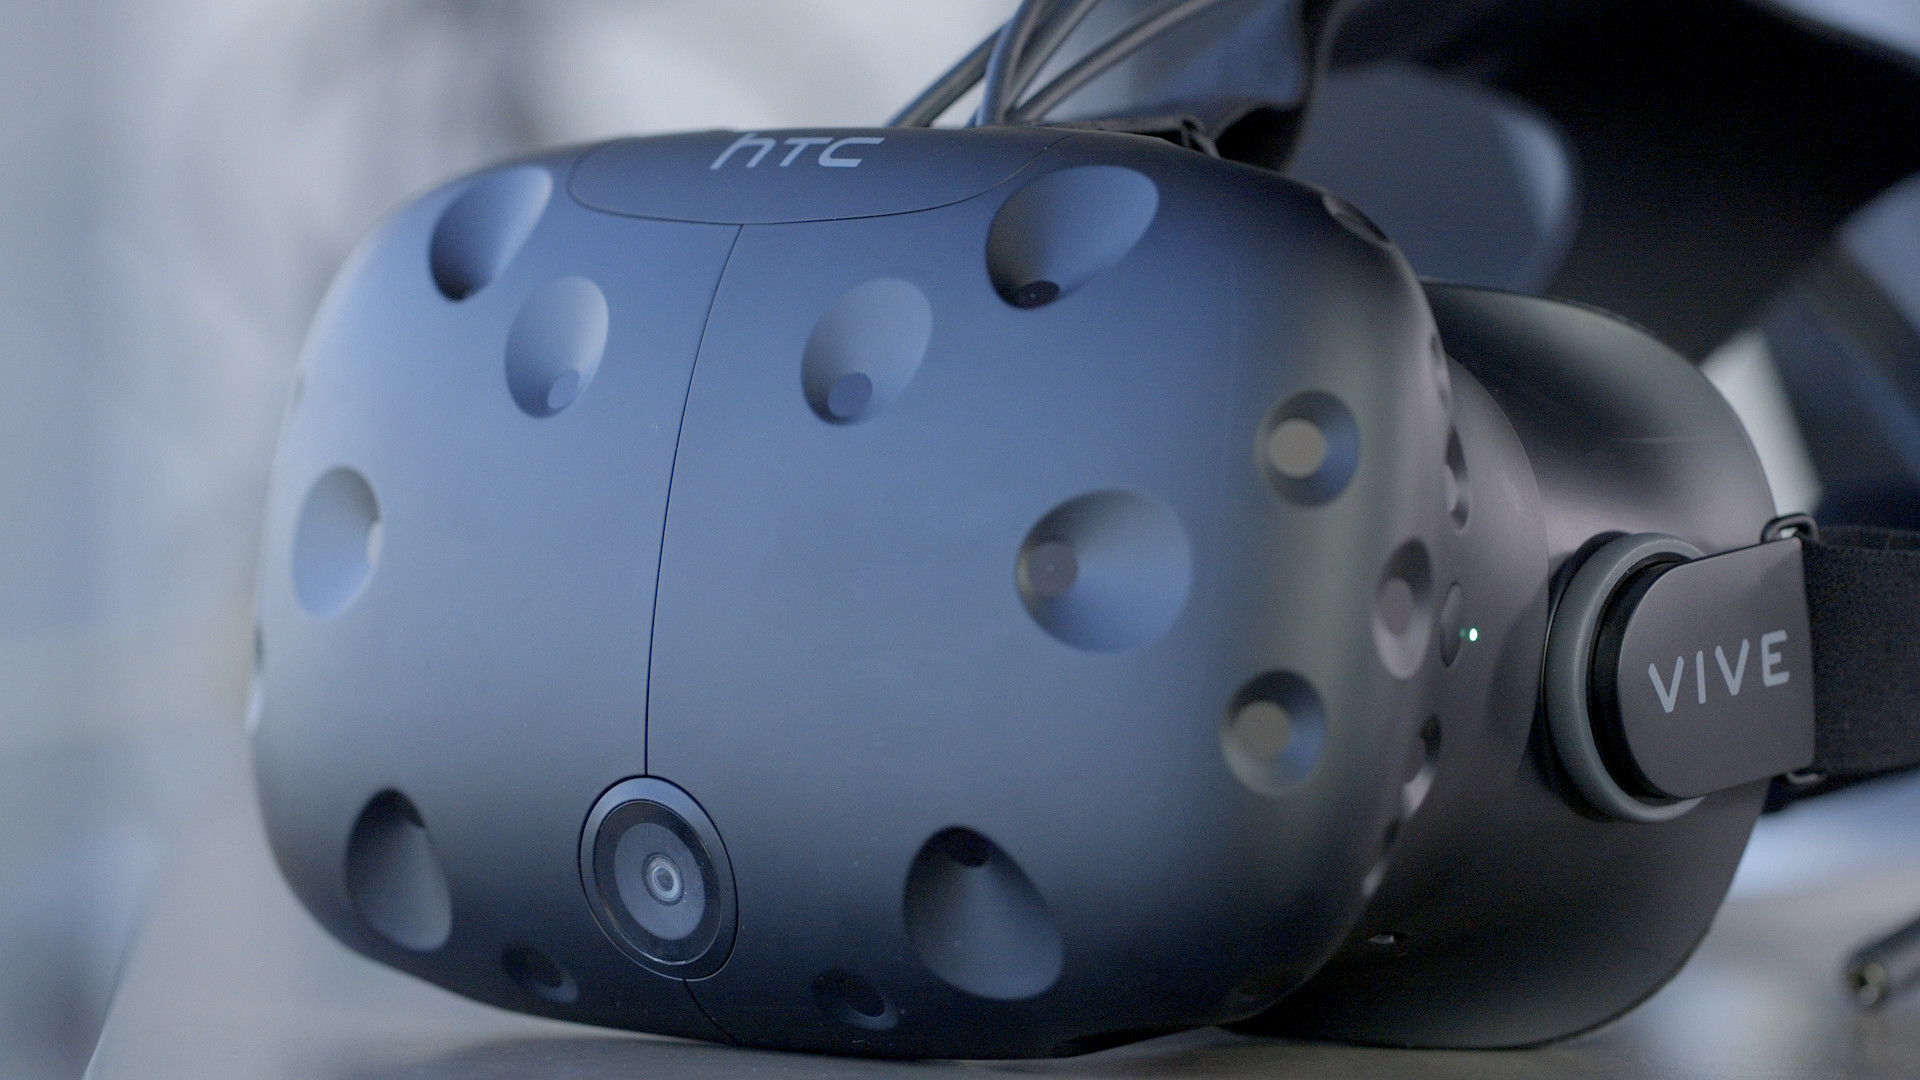 1920x1080 Valve opens the HTC Vive's SteamVR tracking tech to all hardware makers,  for free. ""